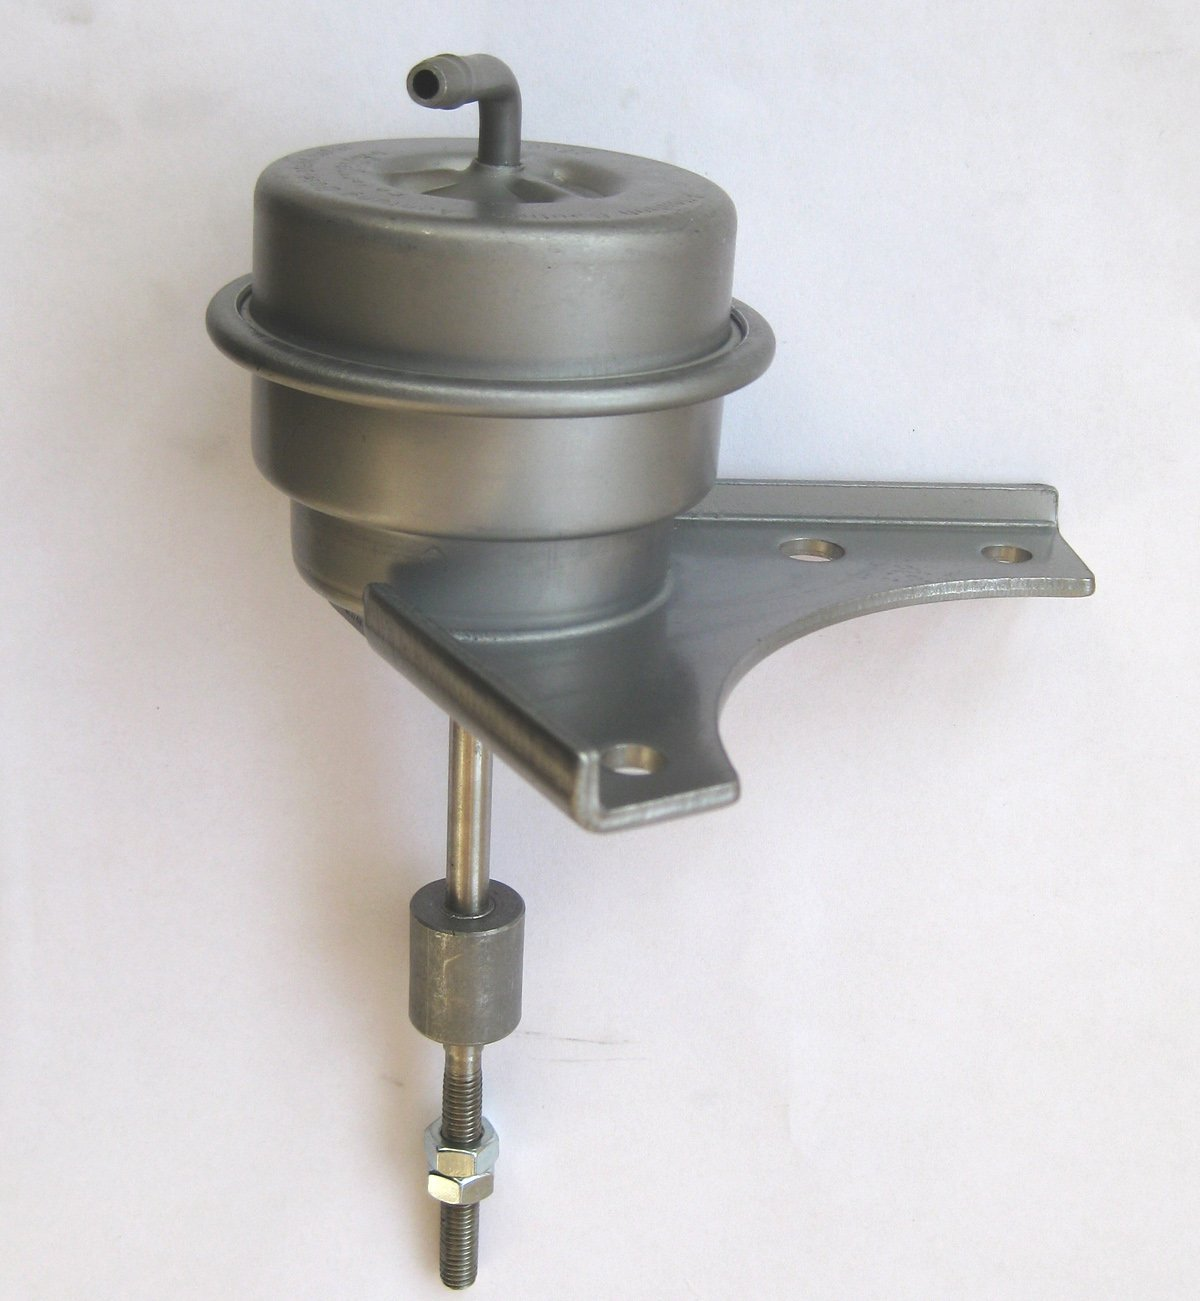 Amazon com: Abcturbo Turbocharger wastegate actuator bypass